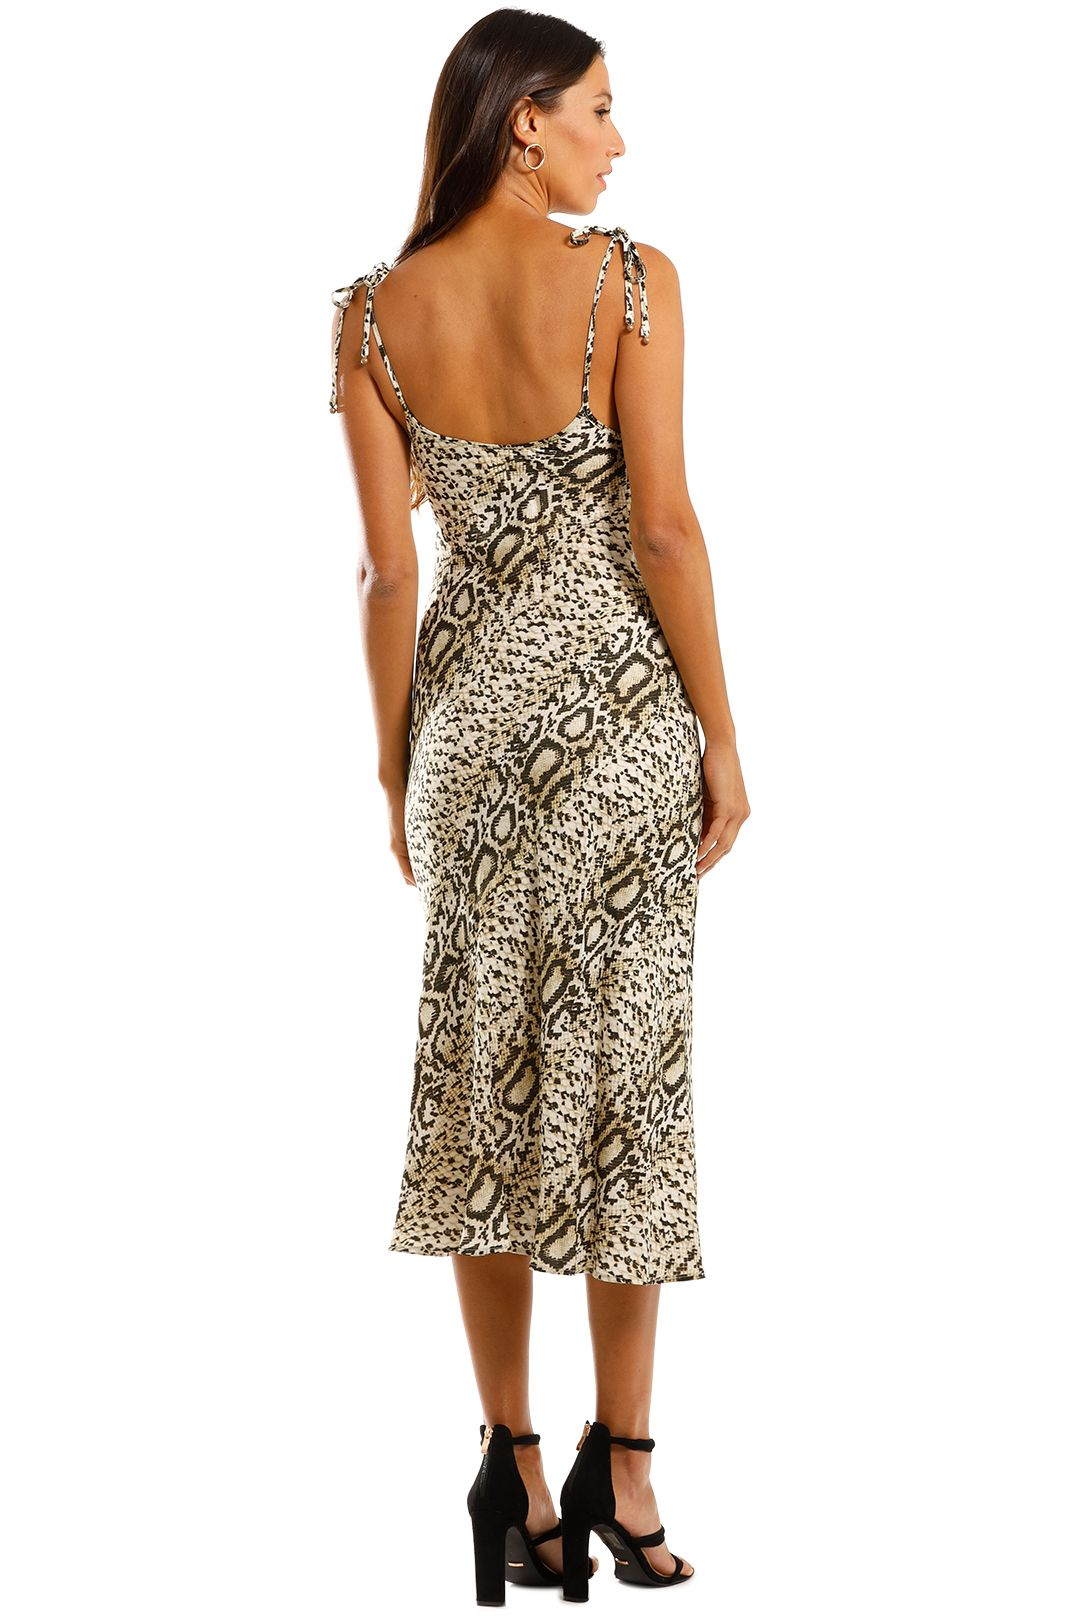 Tigerlily Jerry Slip Dress Animal Print Midi Length